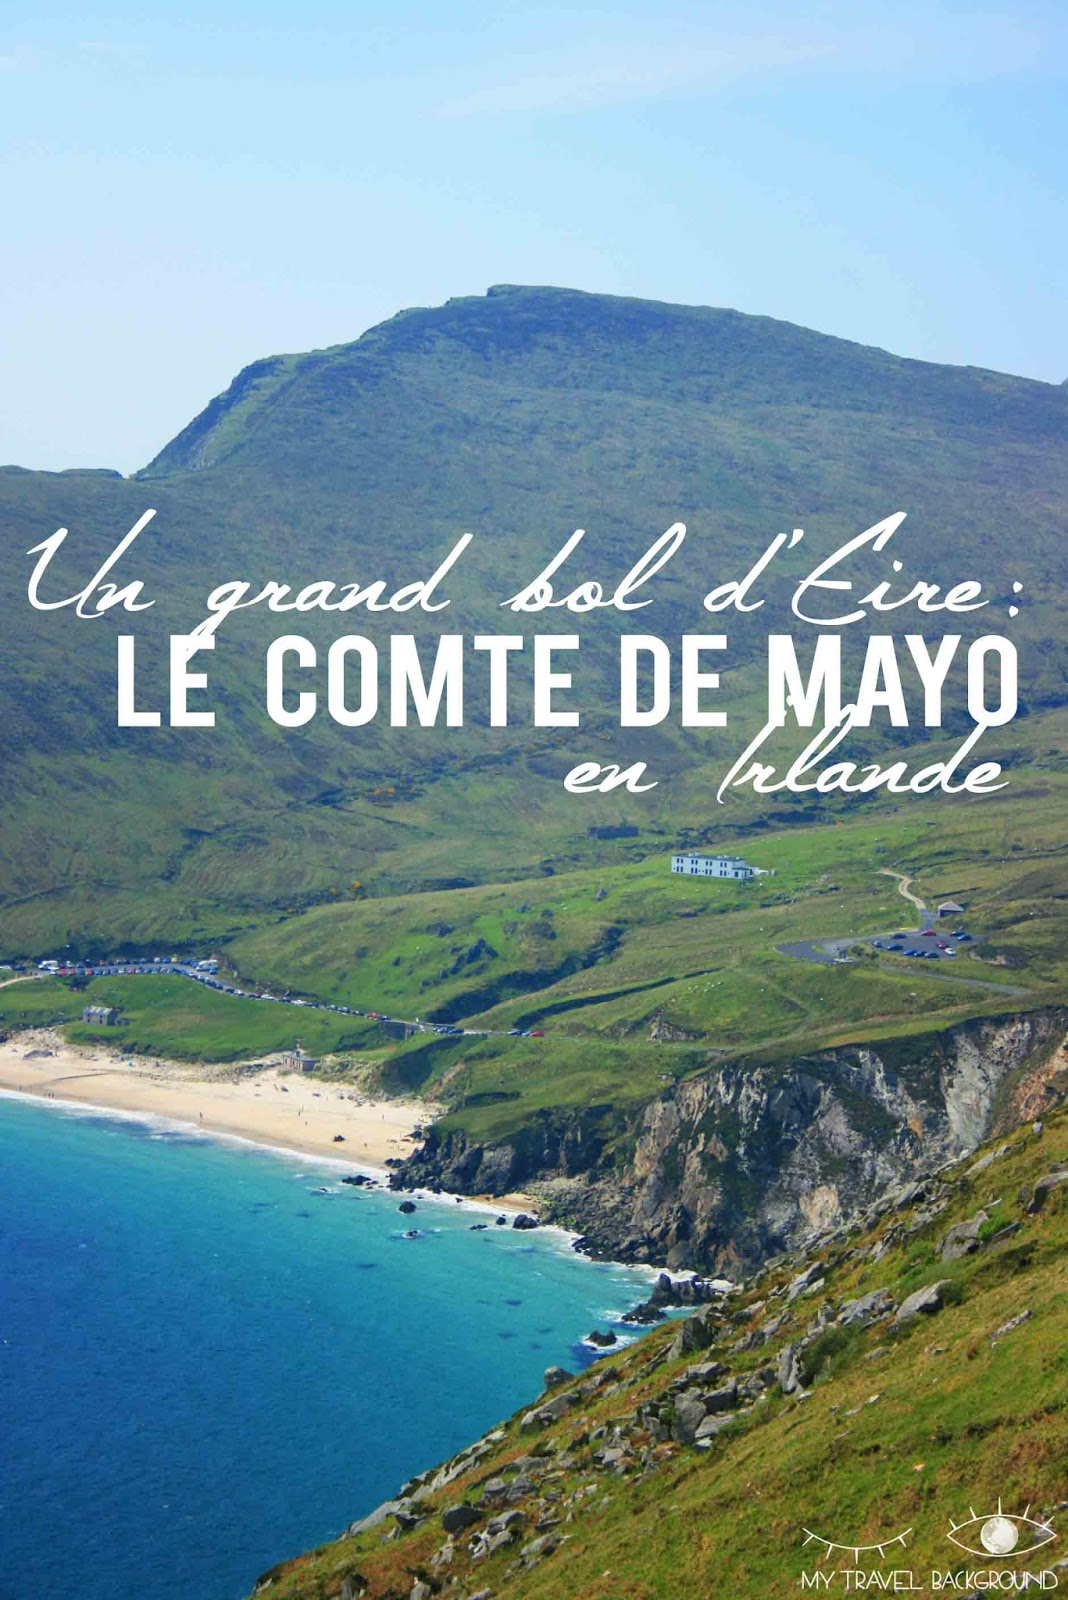 My Travel Background : un grand bol d'Eire dans le comté de Mayo en Irlande - Foxford et Achill Island